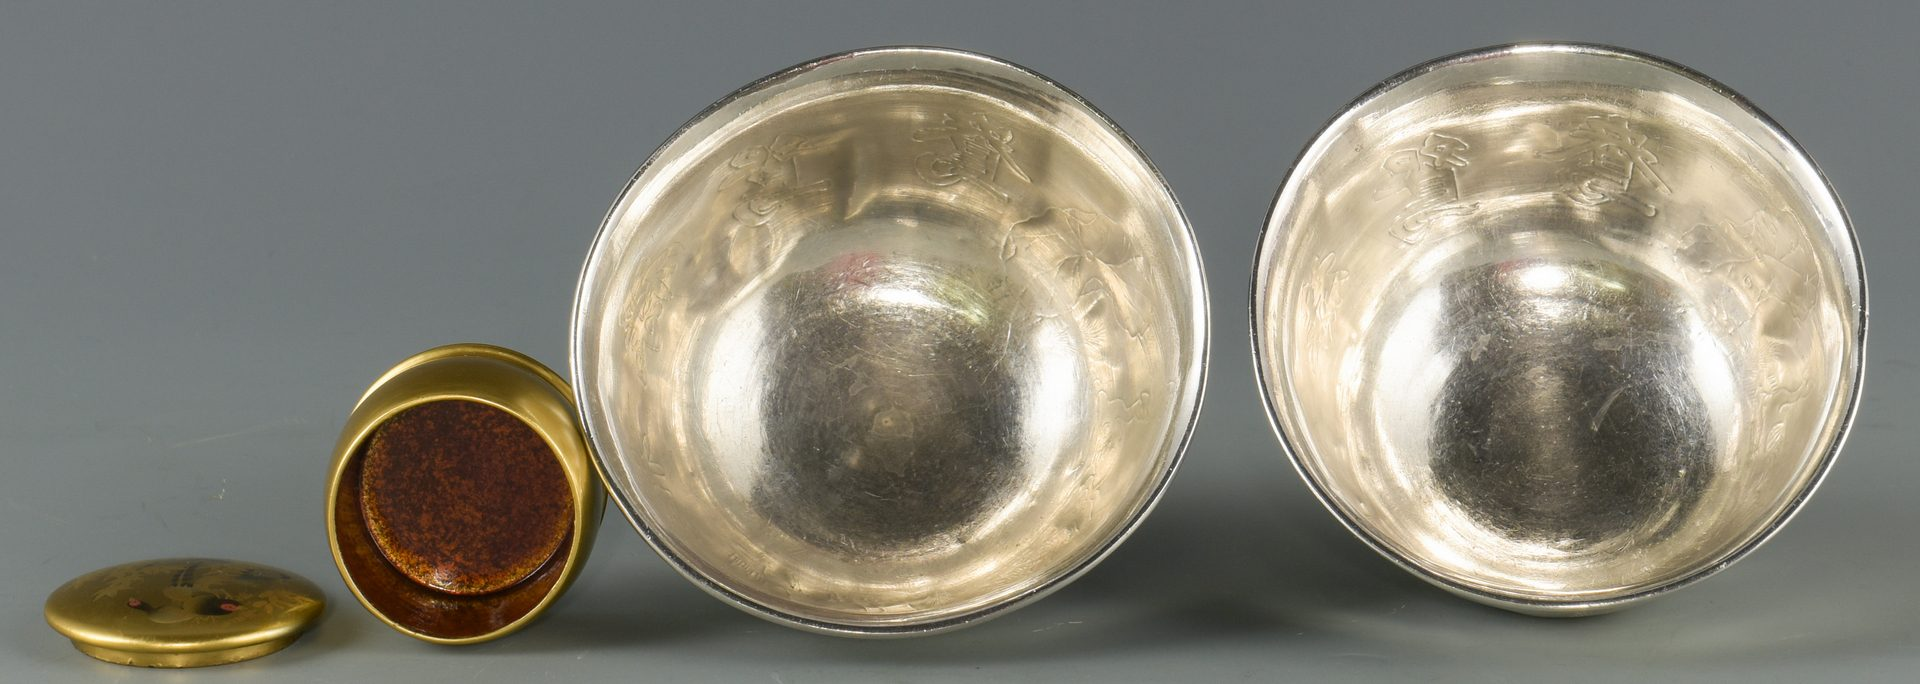 Lot 128: 6 Chinese & Asian Decorative Items, incl. Silver